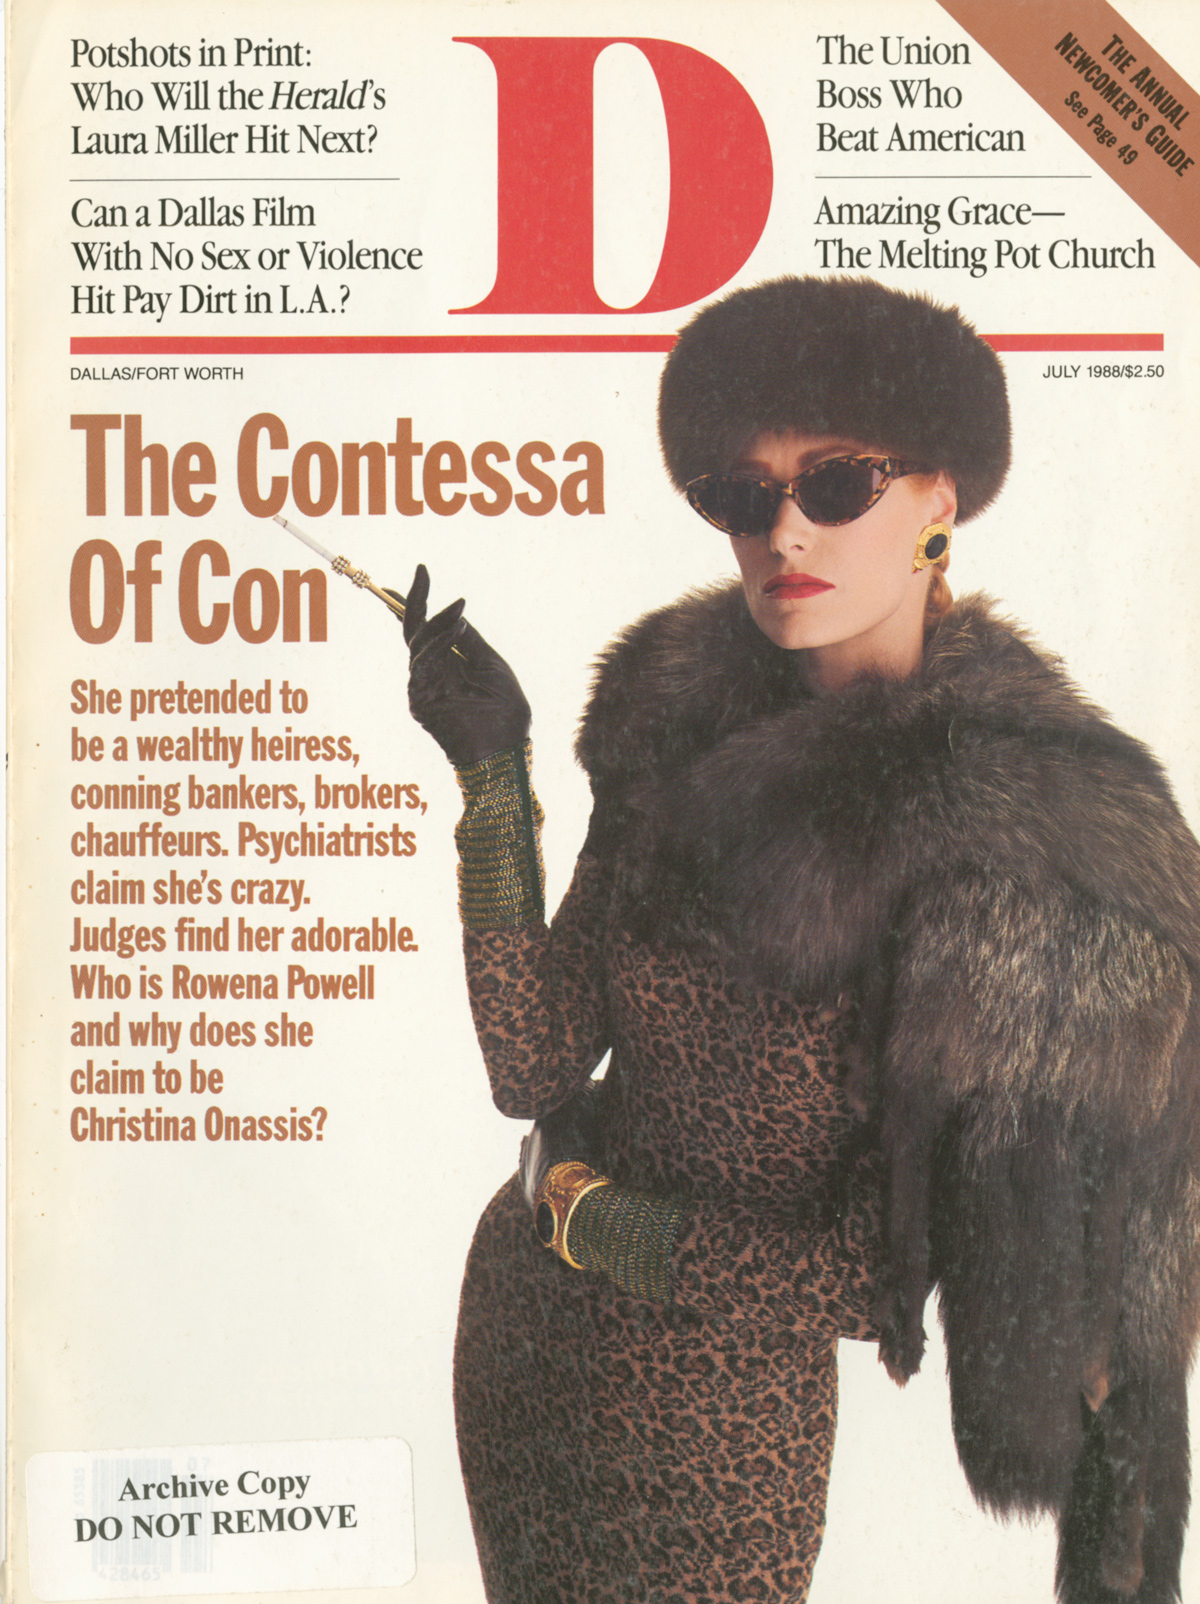 July 1988 cover